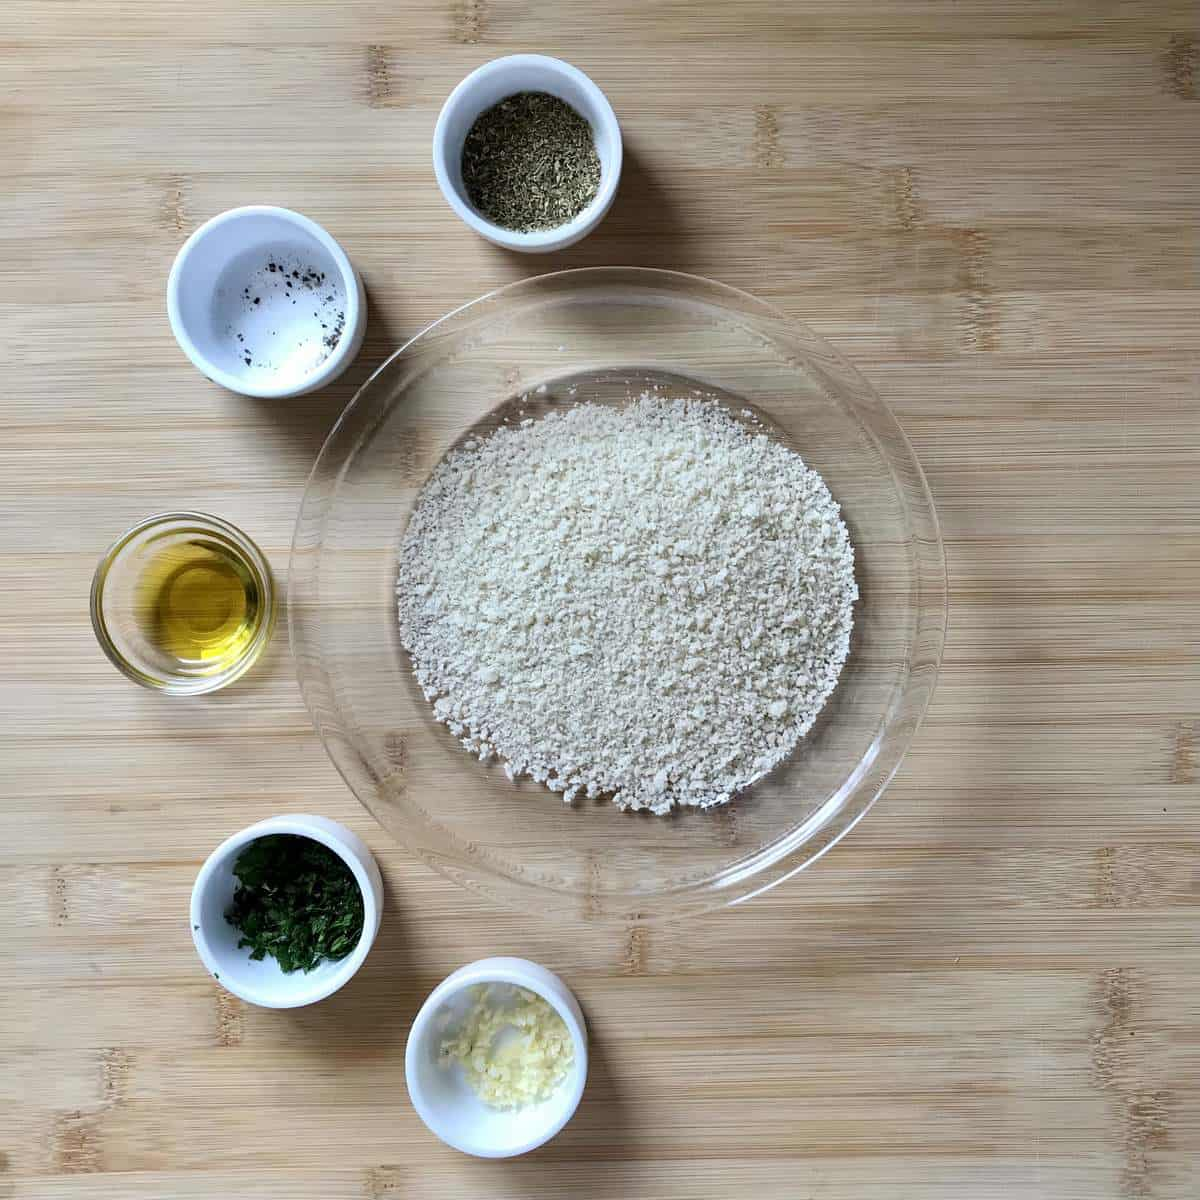 Ingredients to make the panko crumb topping for air fryer cod.